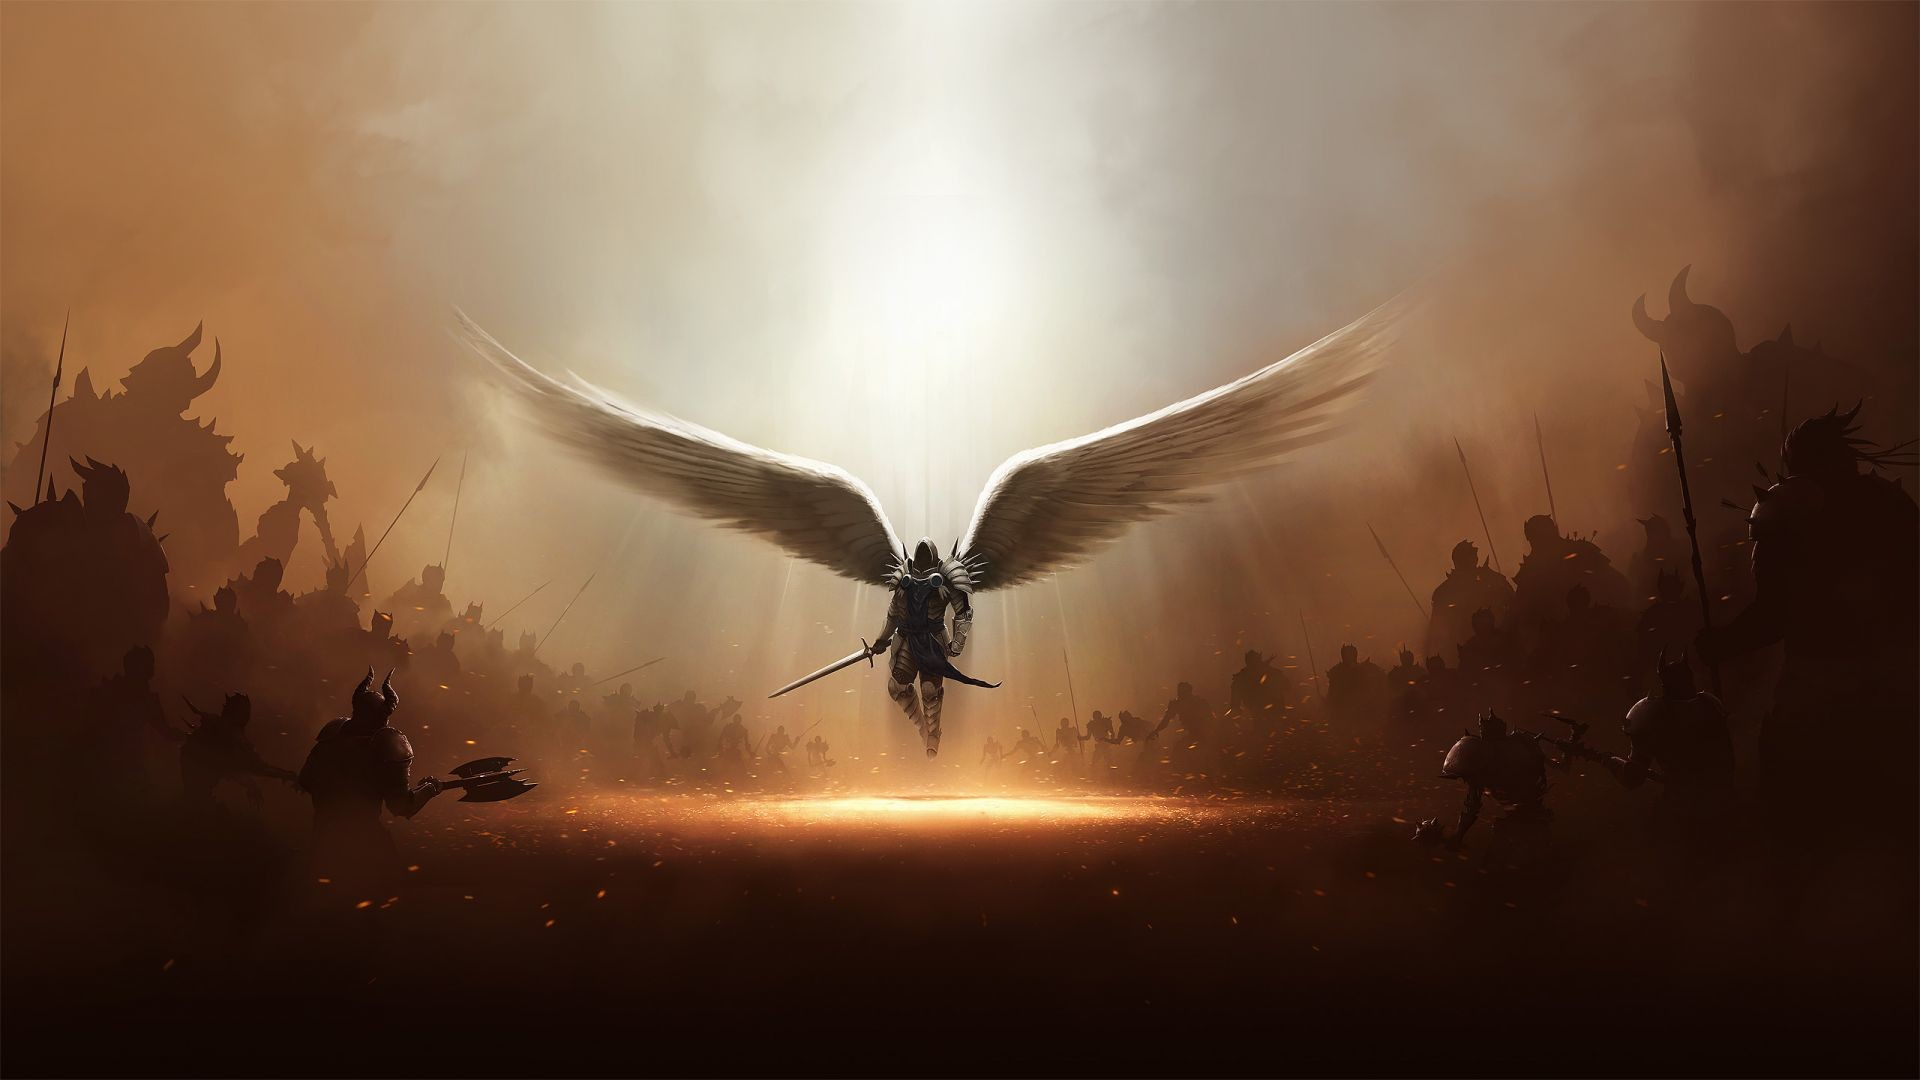 1920x1080 Tyrael Alone War Fighting Angel Demons Hell Heaven Diablo Game